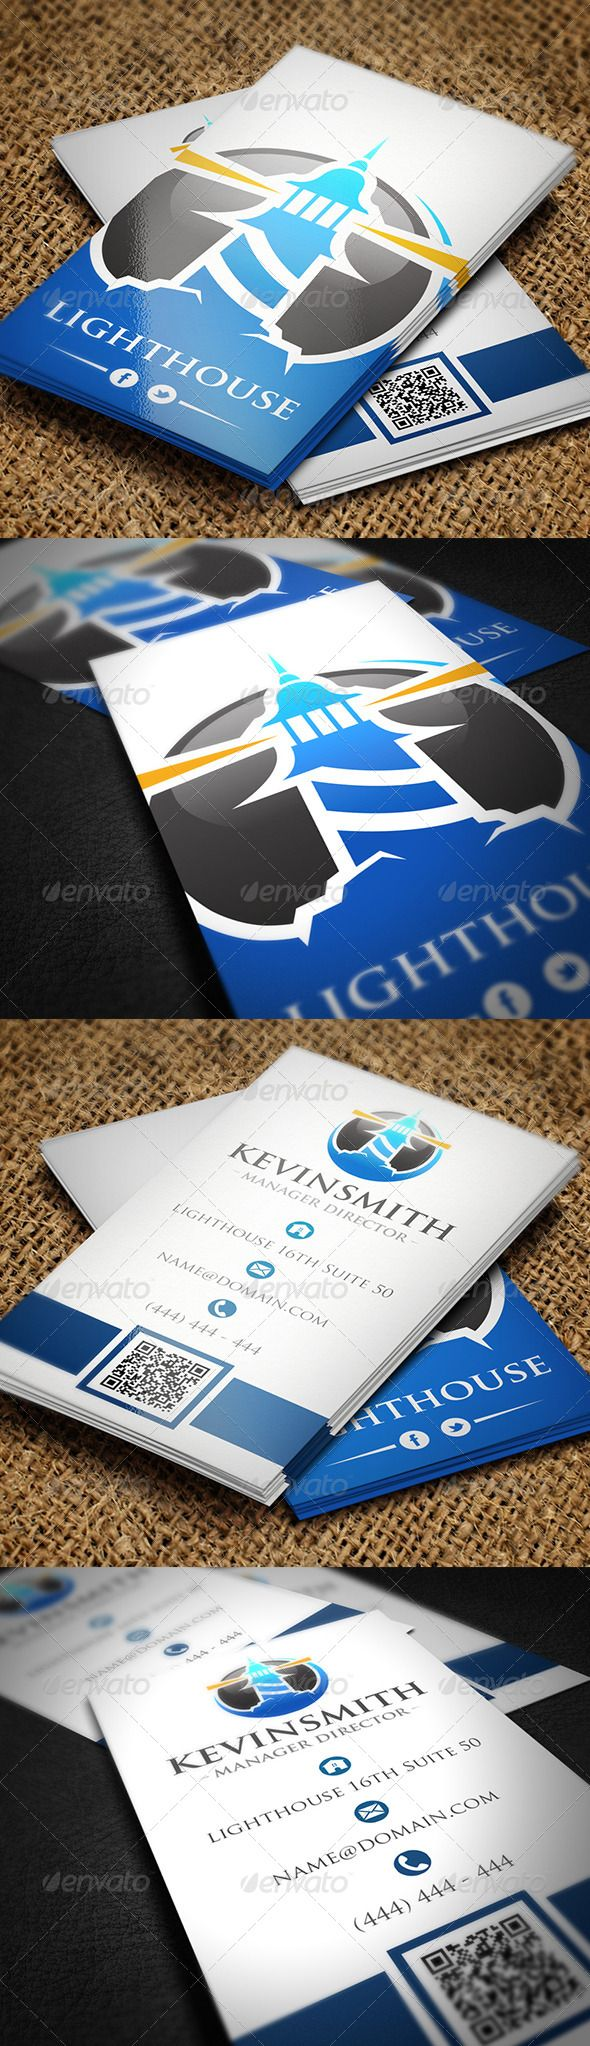 Lighthouse Business Card | Business cards, Lighthouse and Business